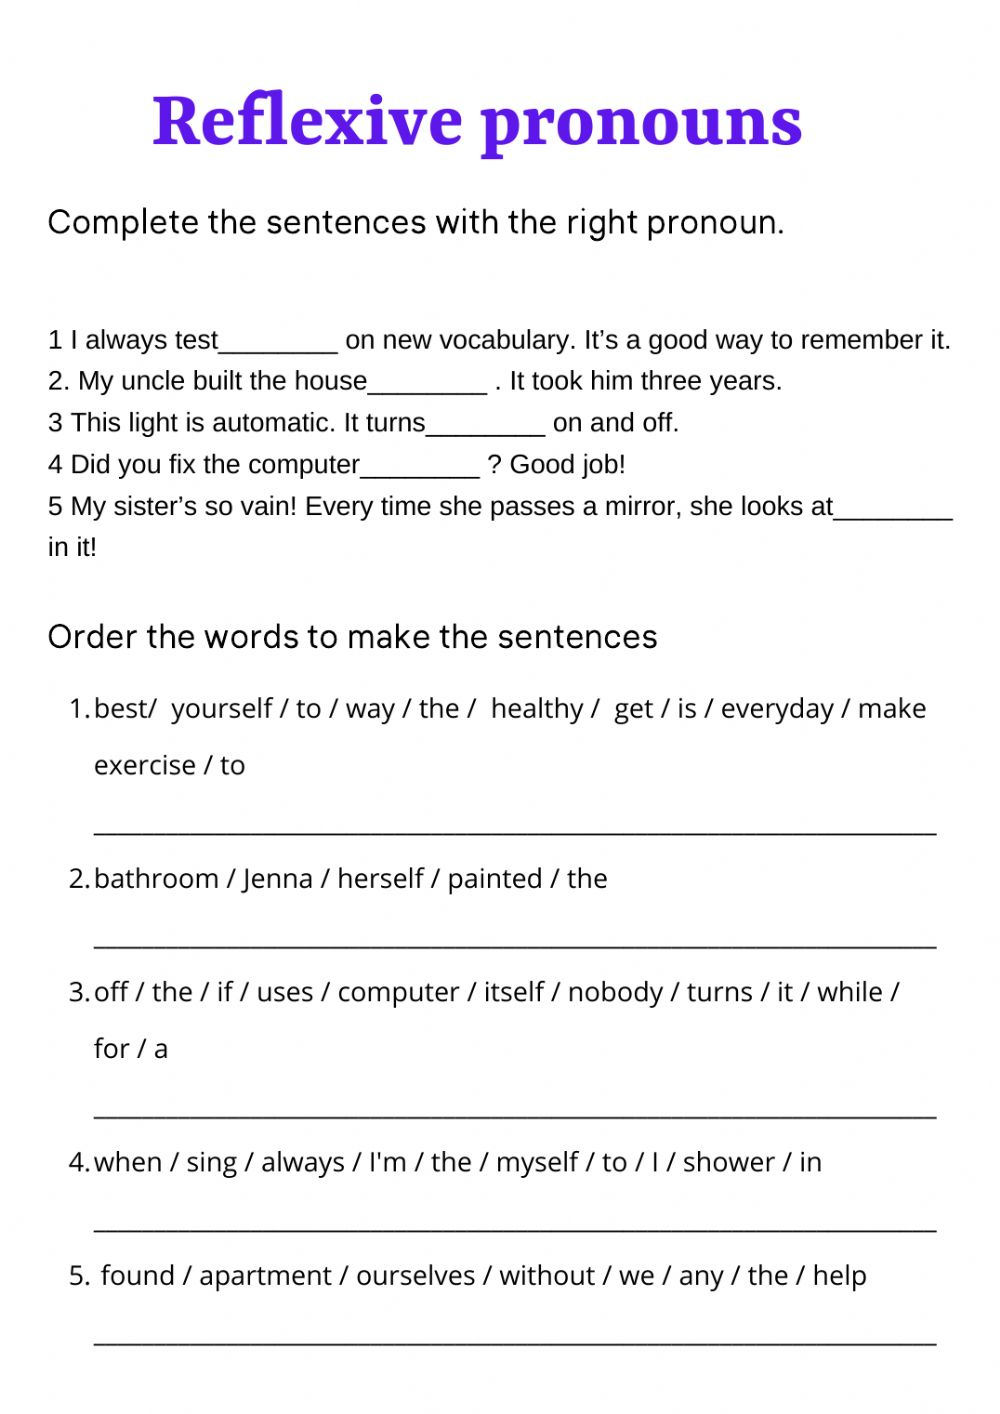 medium resolution of Reflexive pronouns zsciencez activity